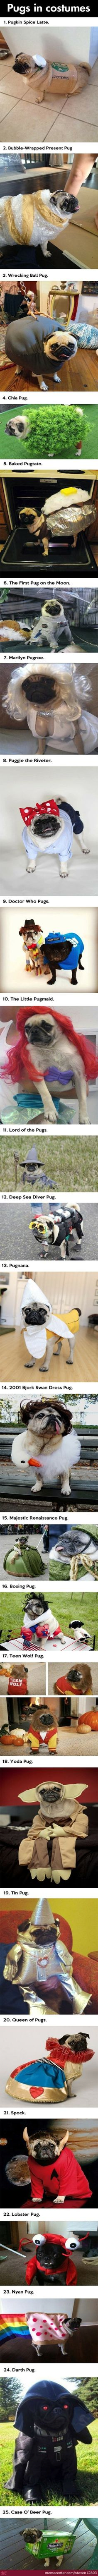 I don't like little dogs, but these are still funny. Can't wait to dress up my future amazing dog!